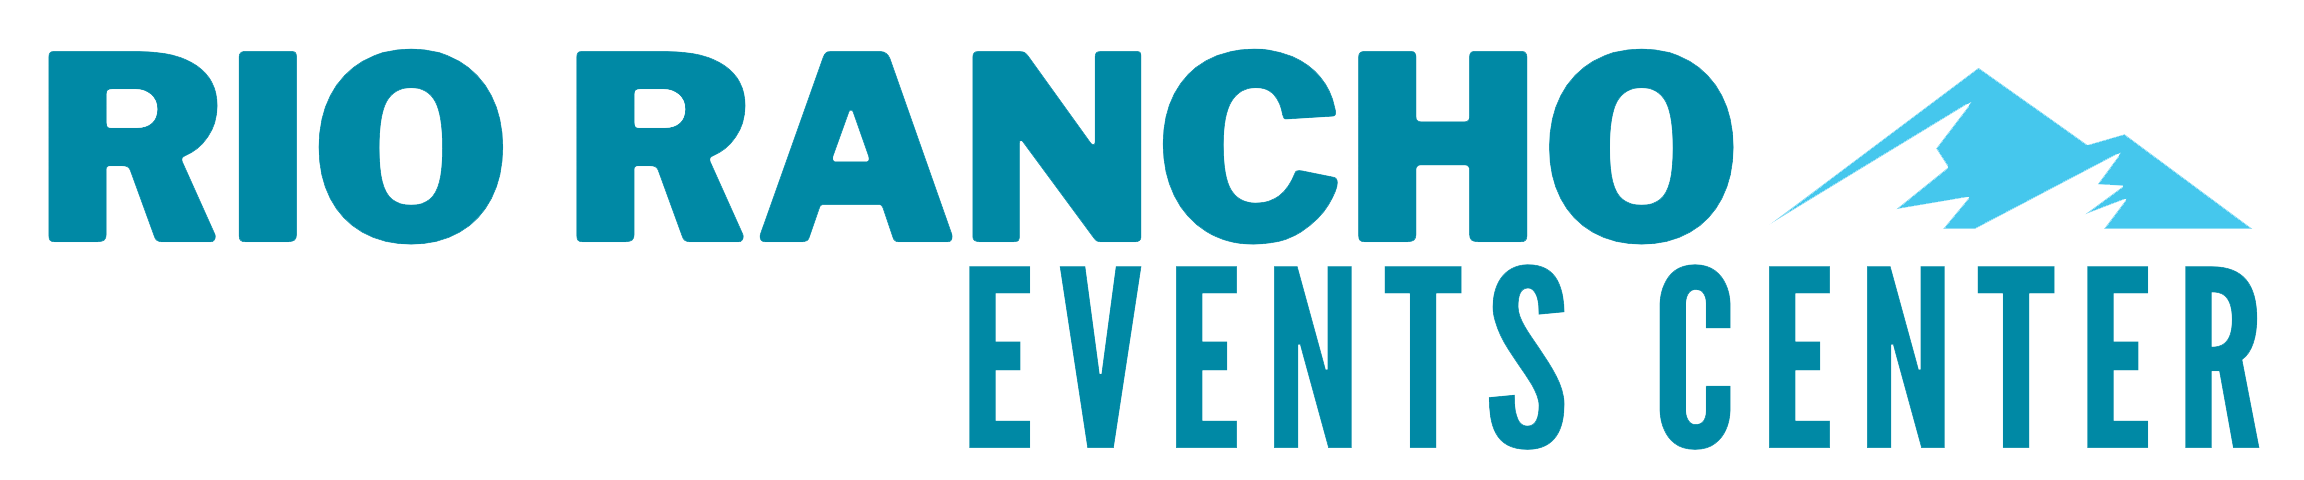 rio rancho events center logo